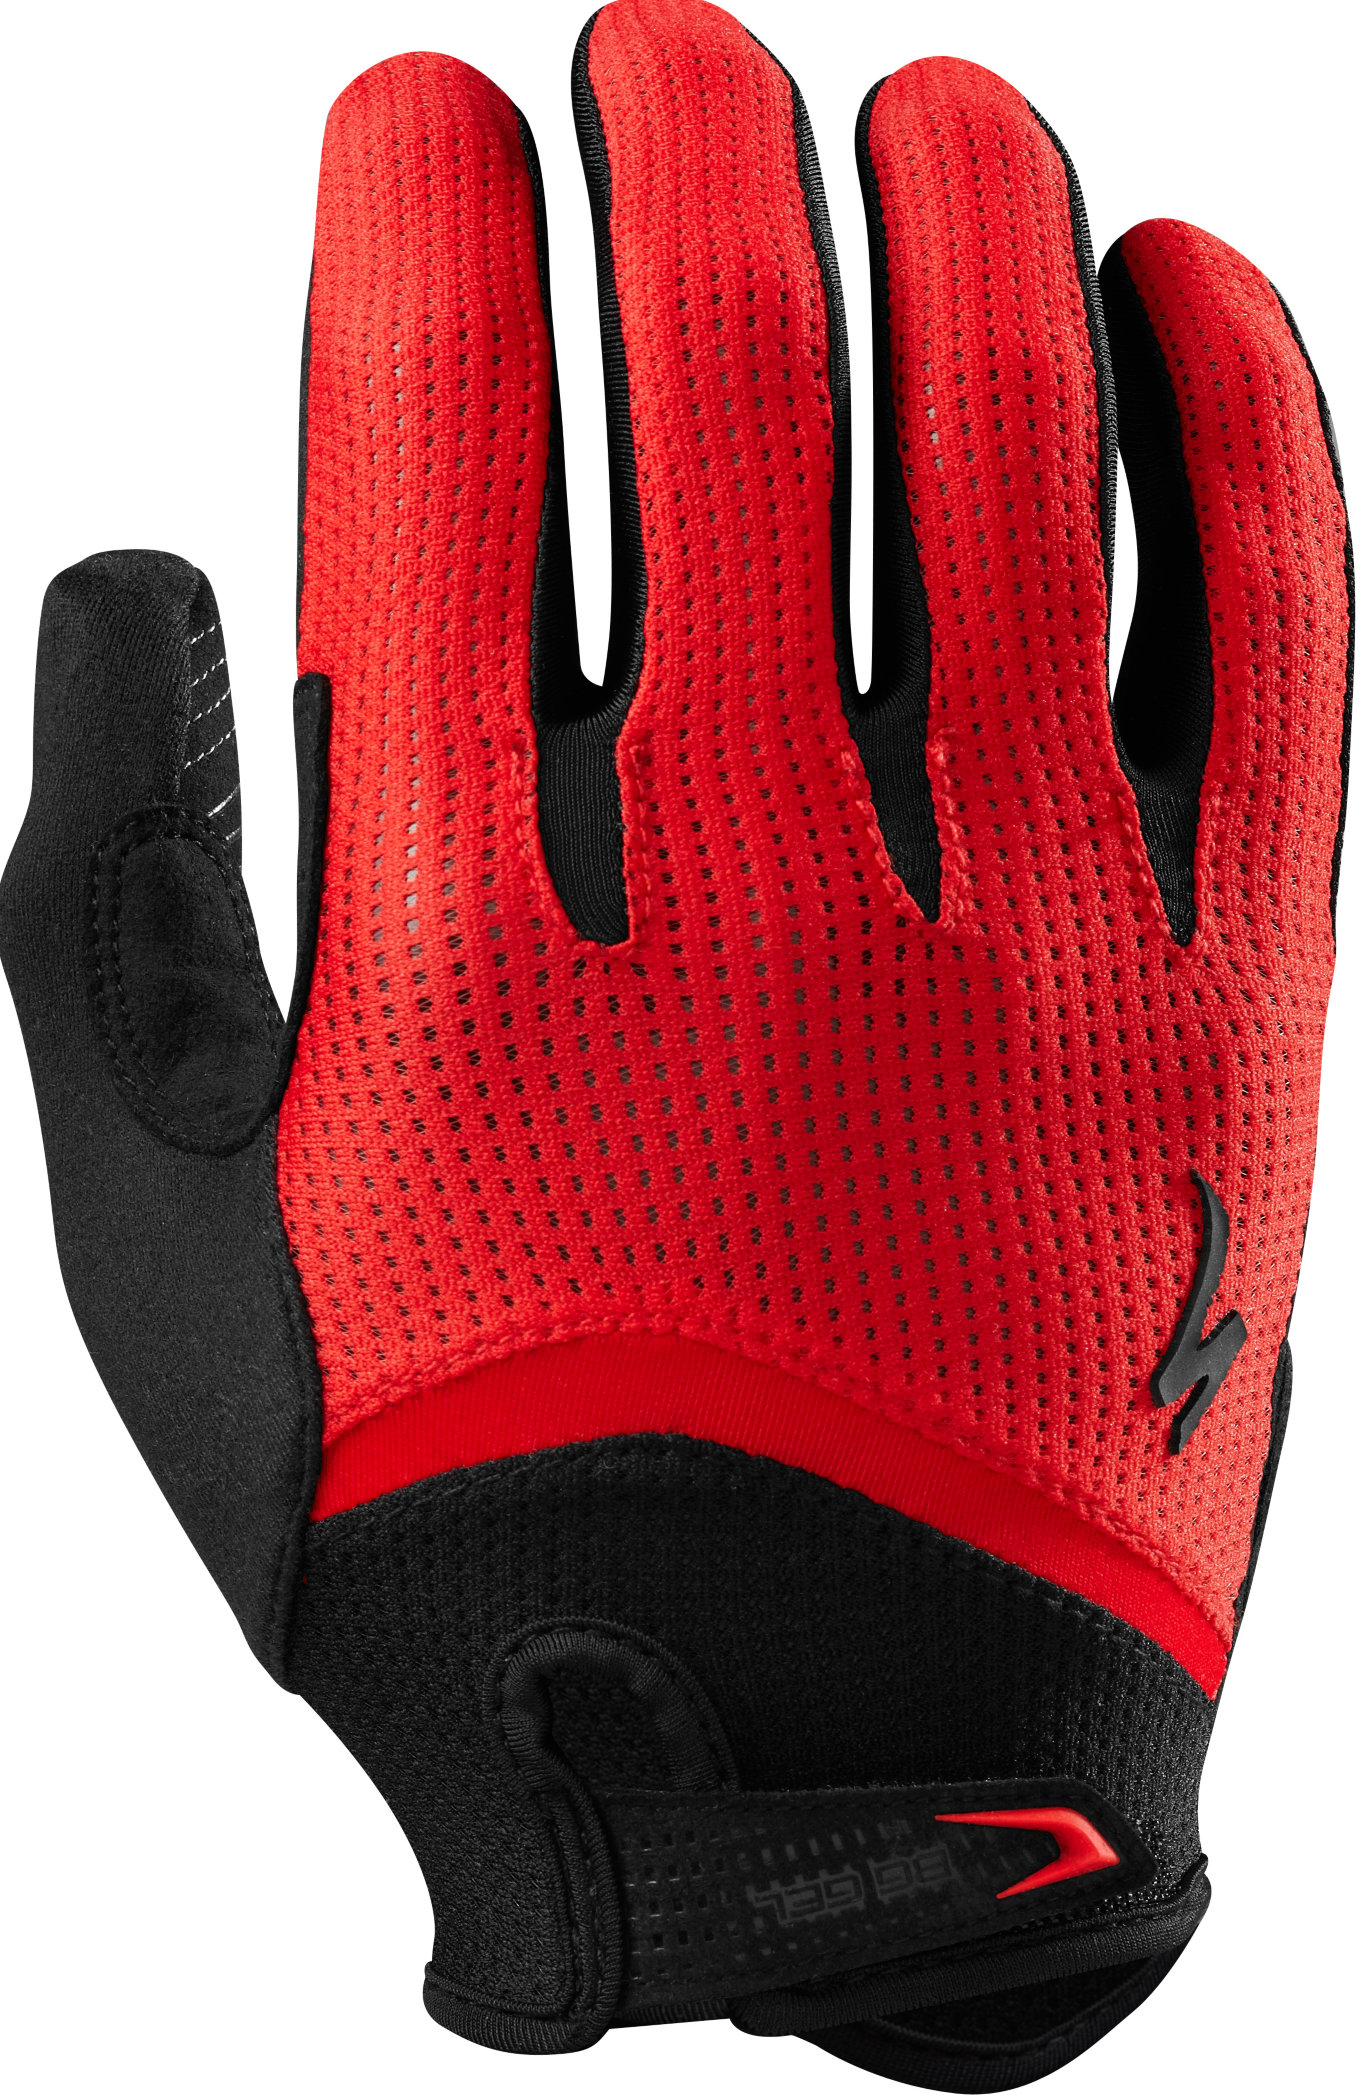 SPECIALIZED BG GEL GLOVE LF RED XL - Bikedreams & Dustbikes